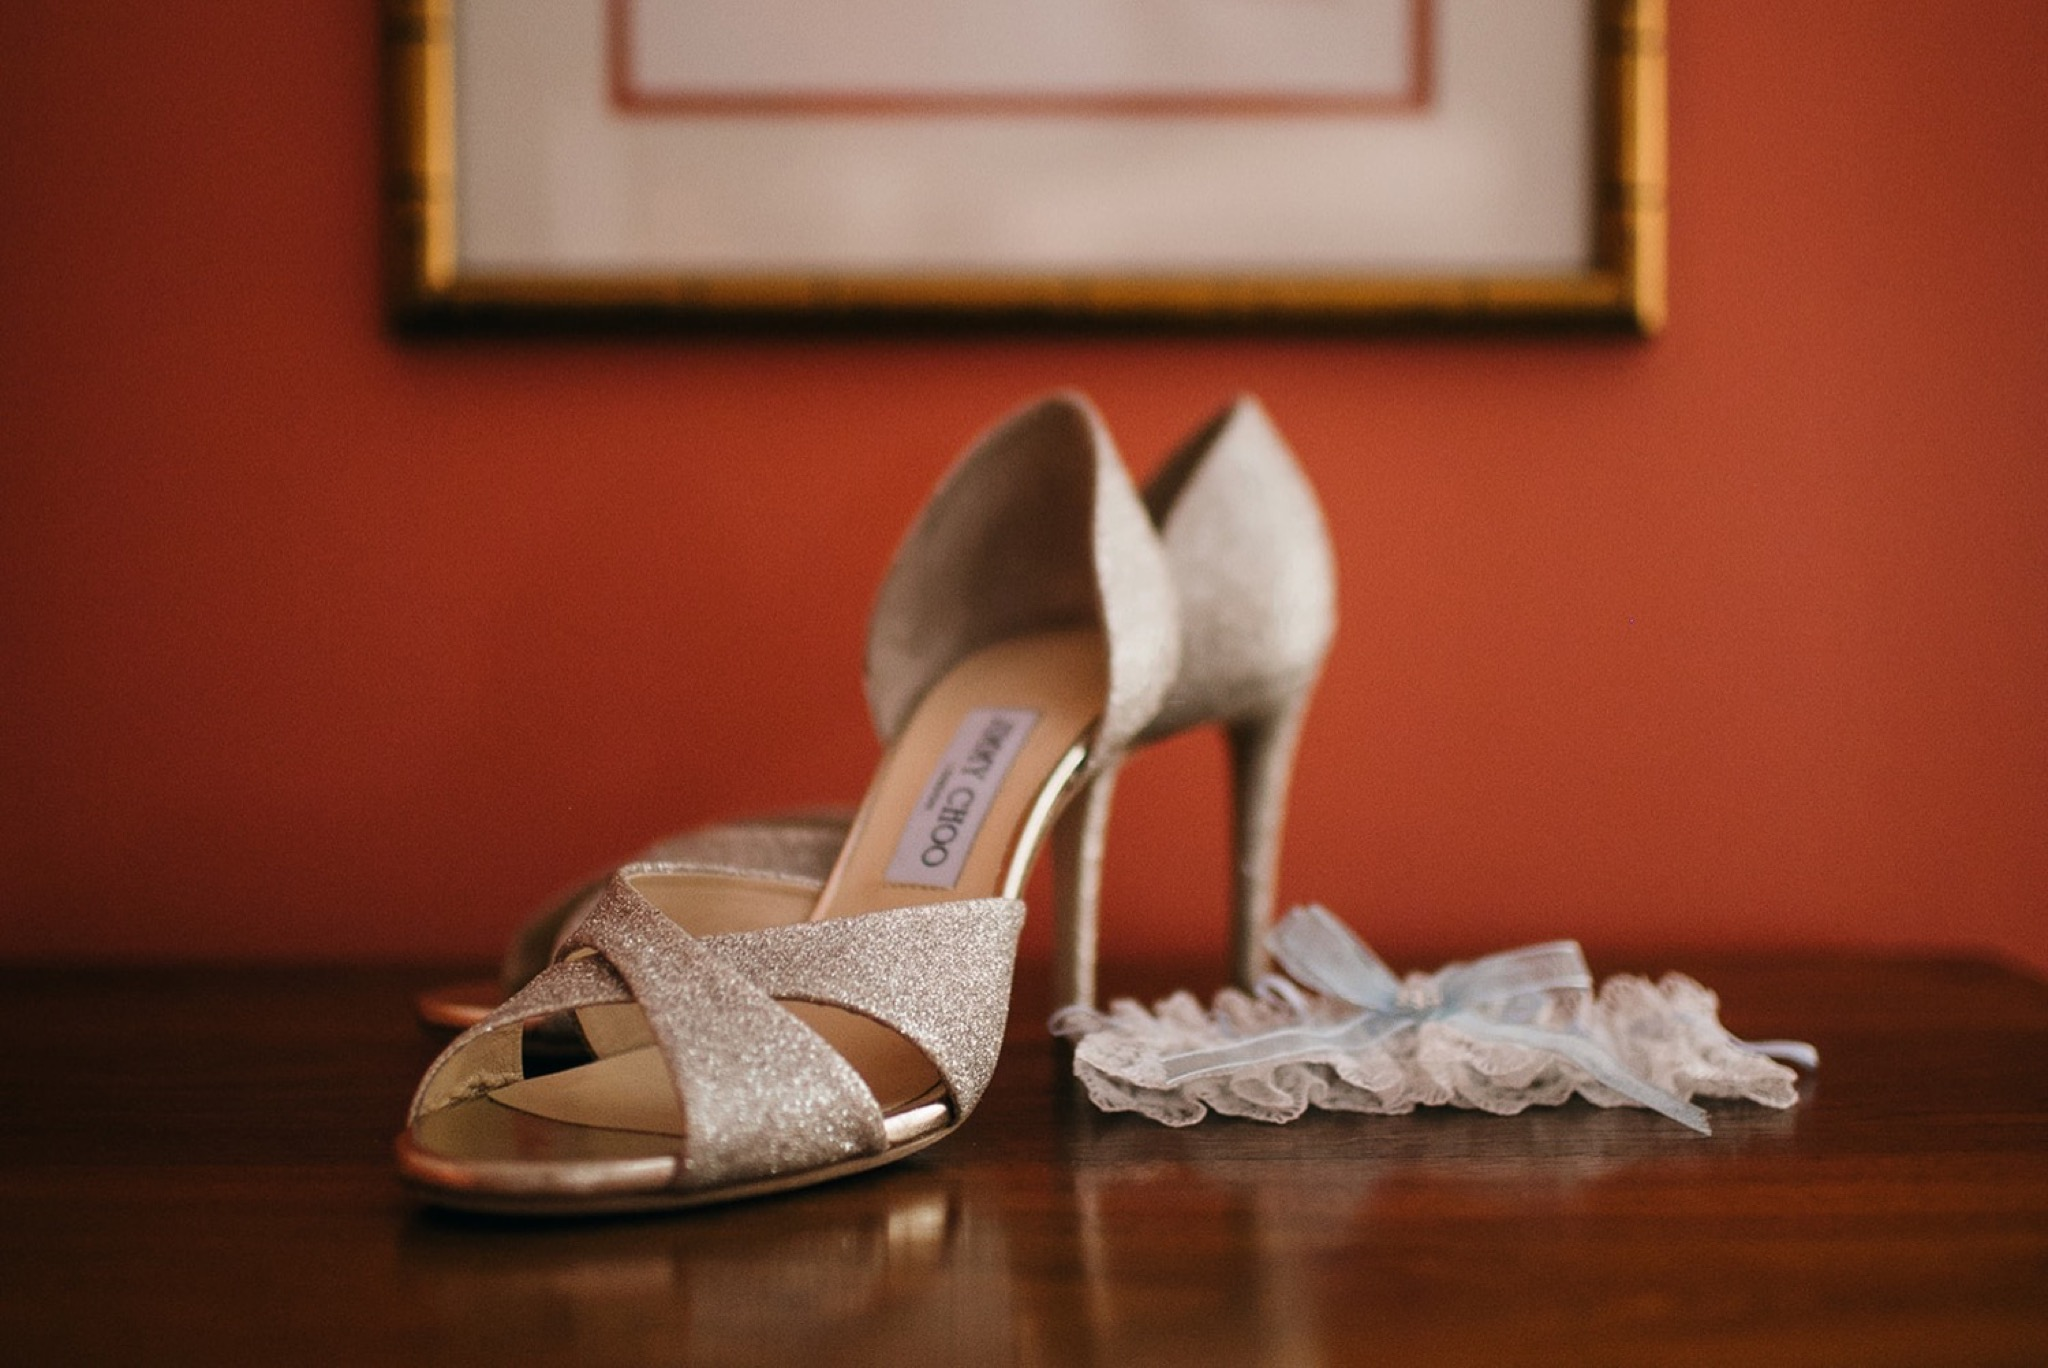 sparkly high heels sit on wooden surface next to lace and ribbon garter